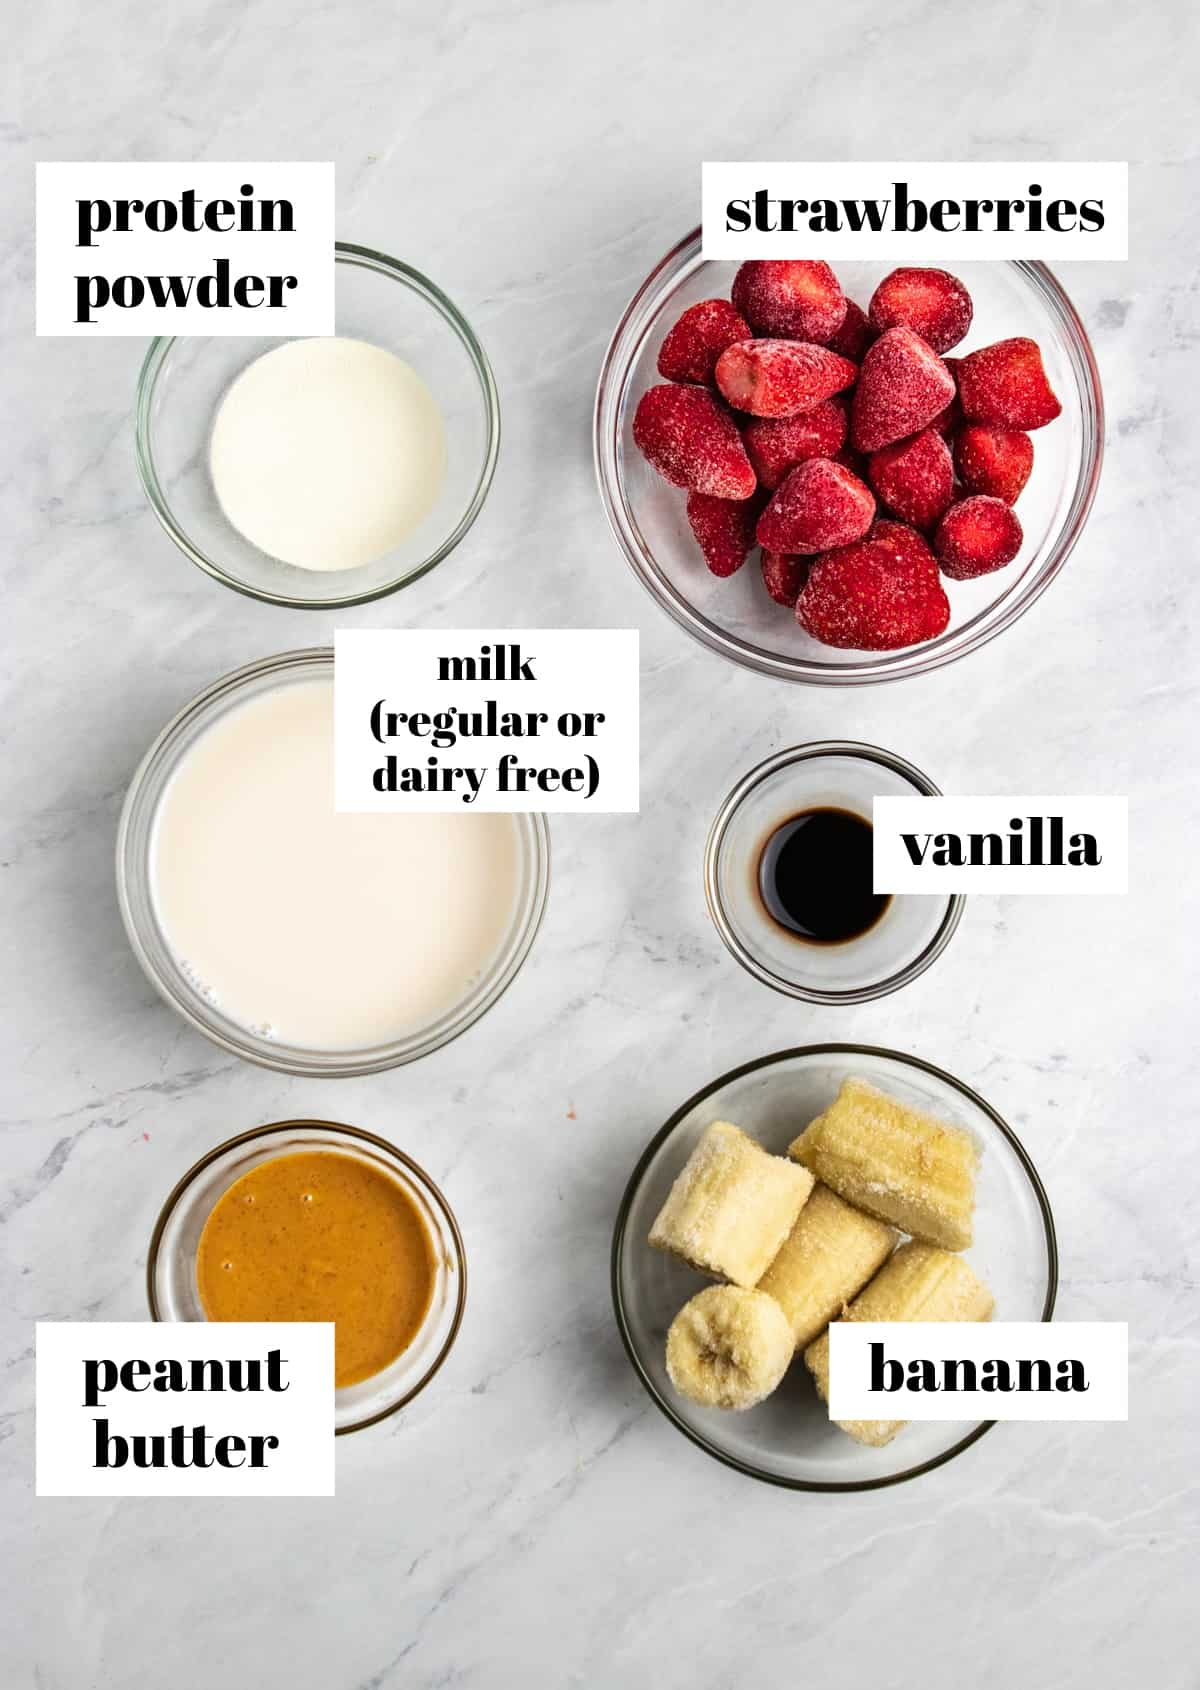 Peanut butter, banana, strawberries, vanilla and ingredients labeled on counter.